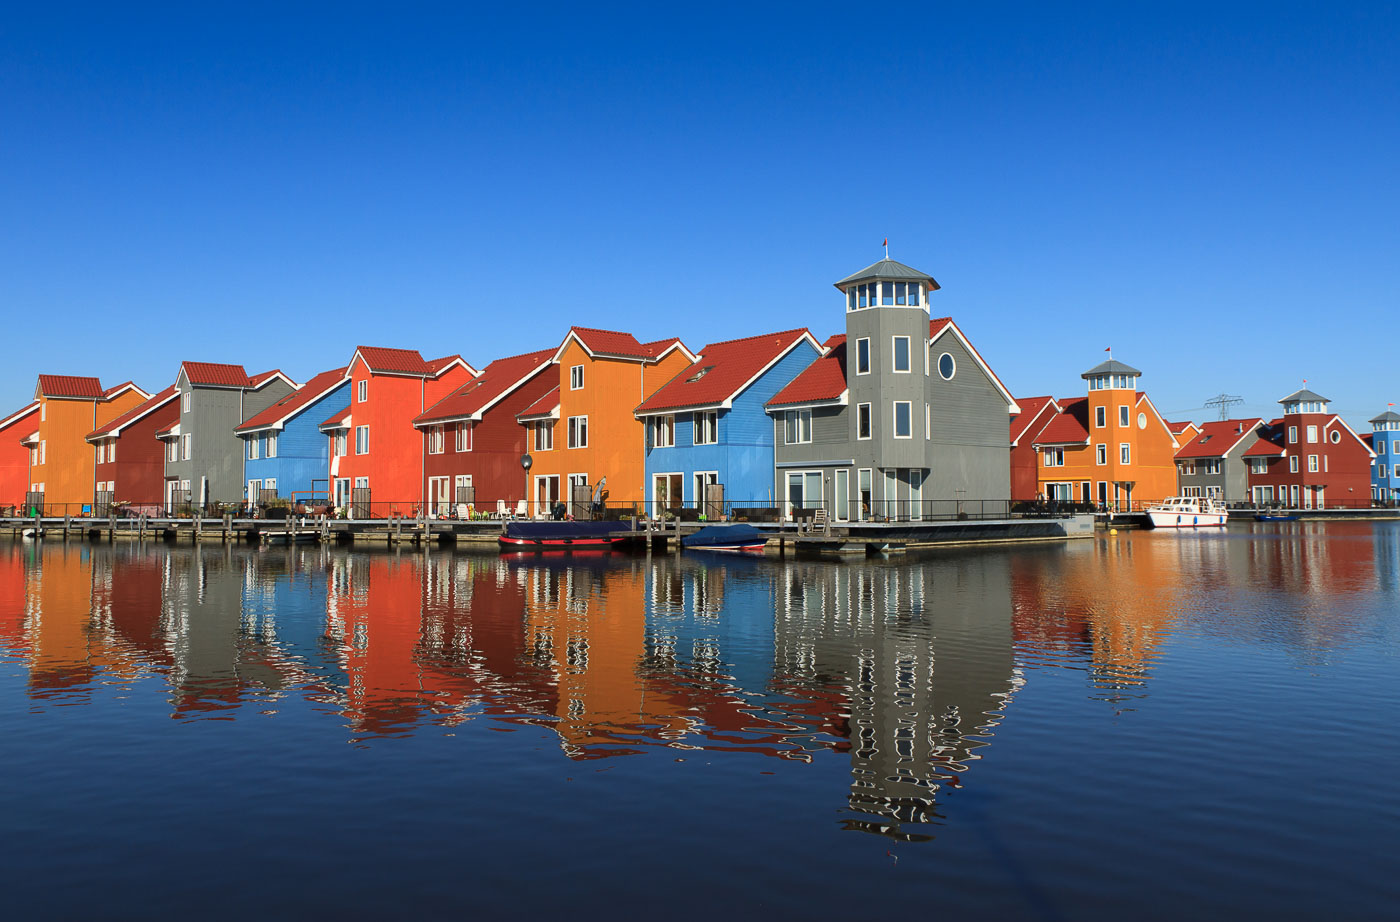 Colourful Cities by Zayah World - Groningen, Holland